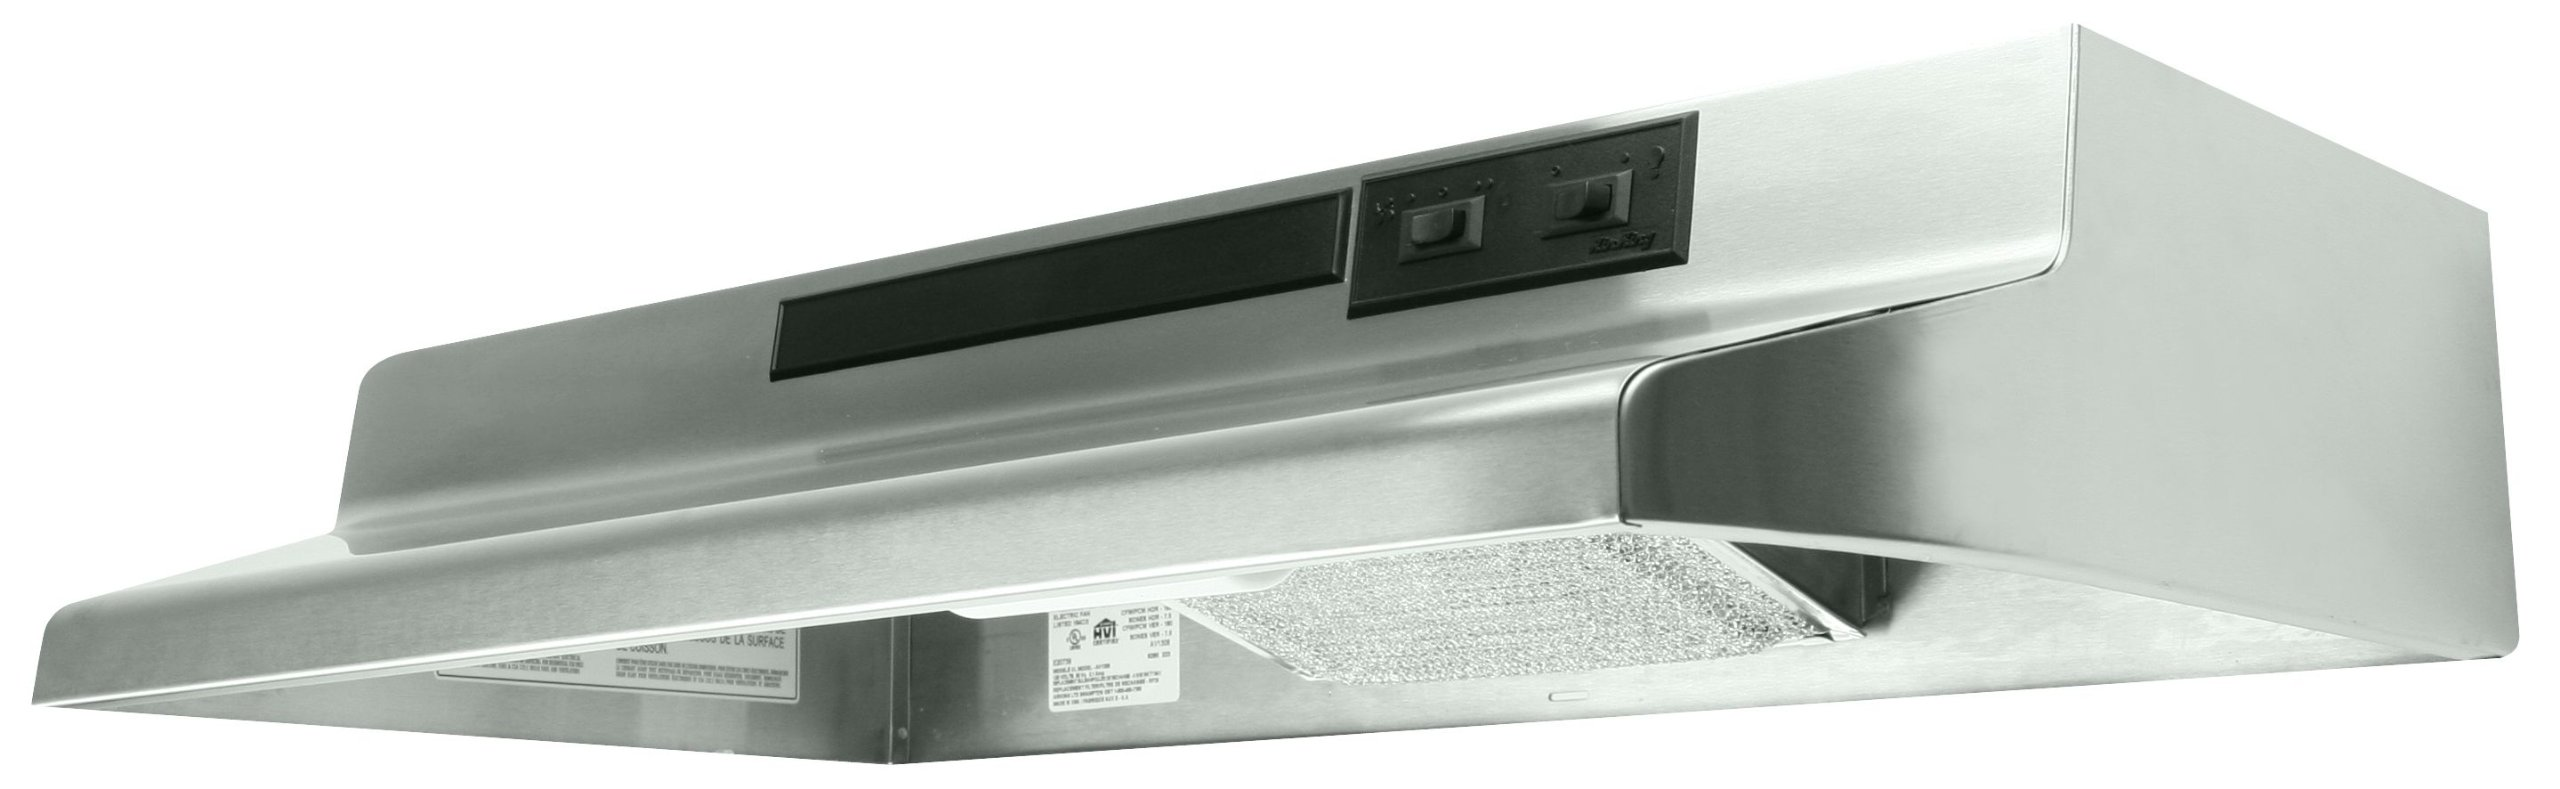 Air King AR1308 7-Inch Round Ducting Under Cabinet Range Hood with 2-Speed Blower and 180-CFM, 7.5-Sones, 30-Inch Wide, Stainless Steel Finish